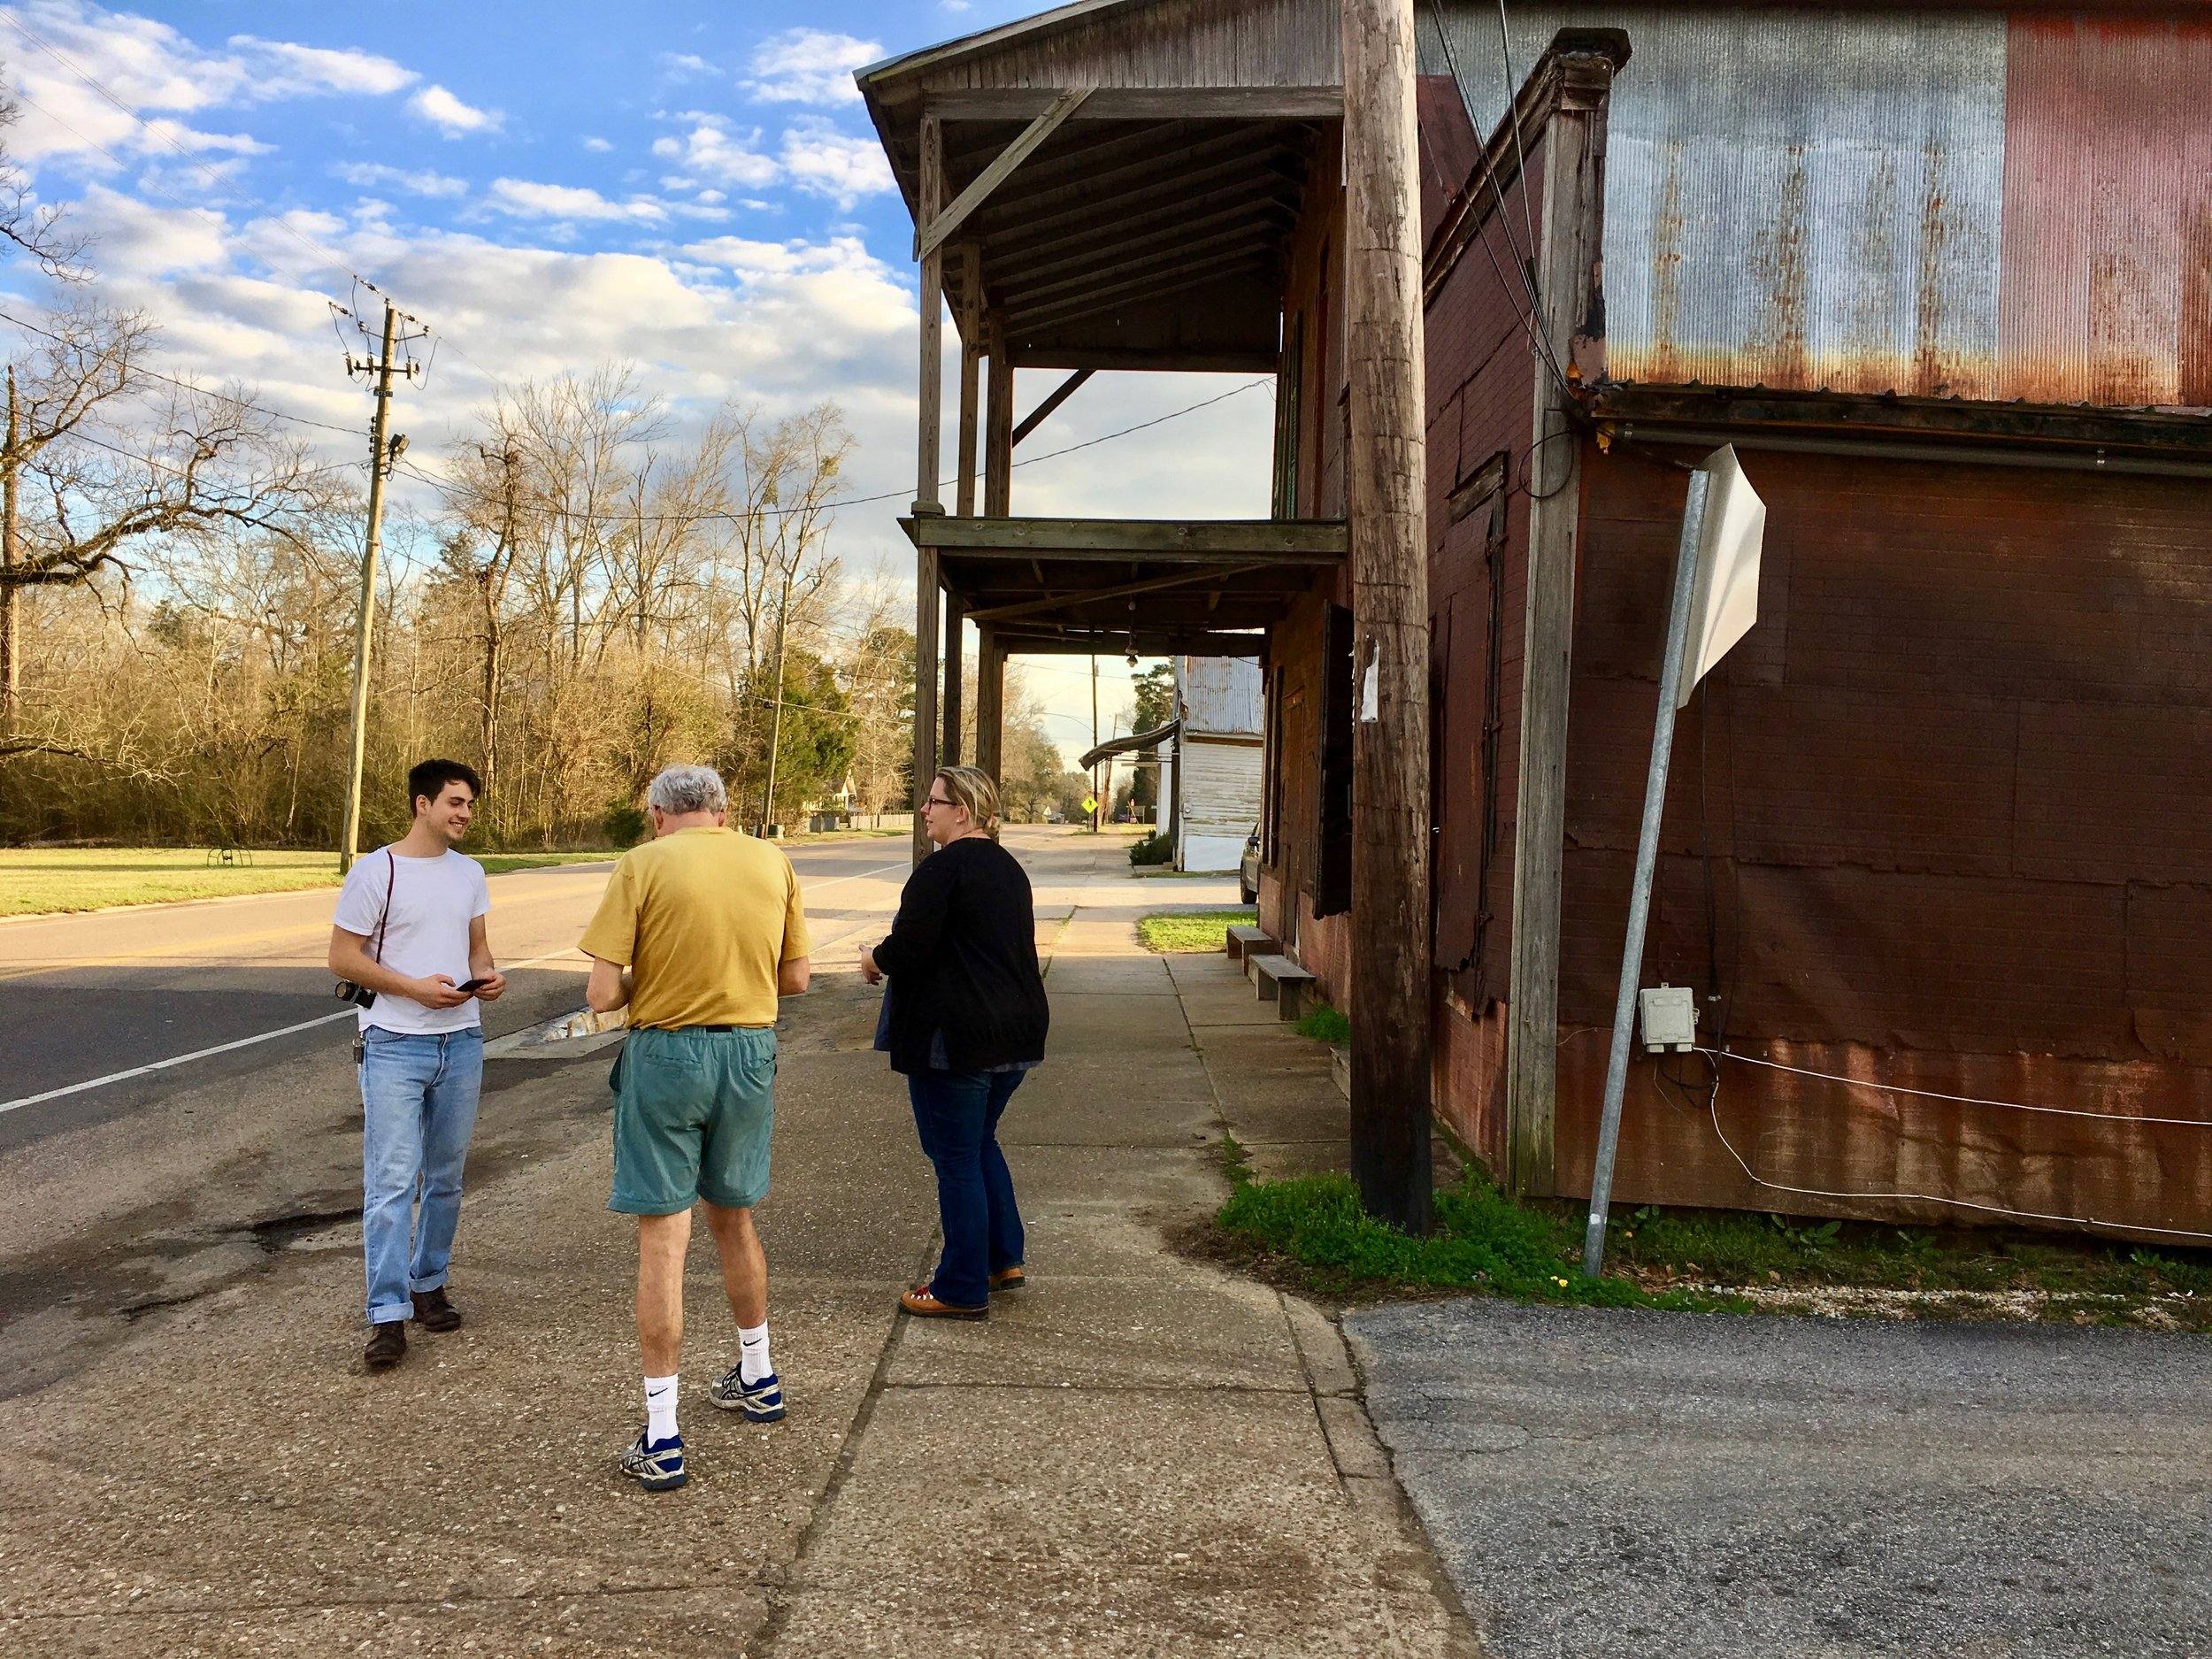 We got a tour of projects in Newbern from staff member Natalie, along with another visitor.